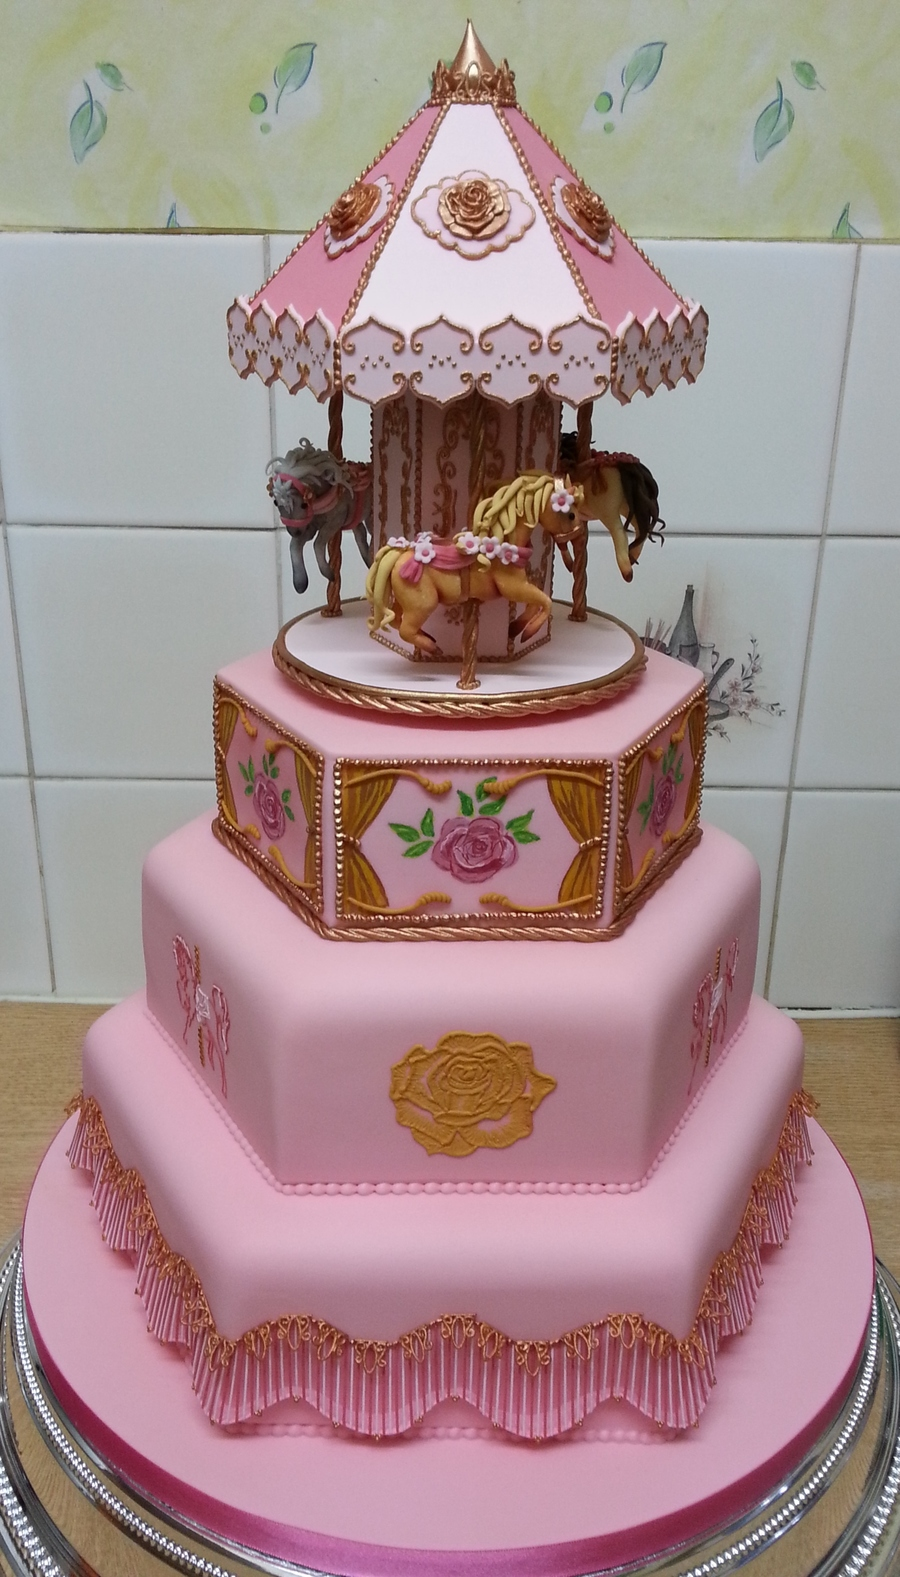 Cake Decorating Carousel : Carousel Christening Cake - CakeCentral.com